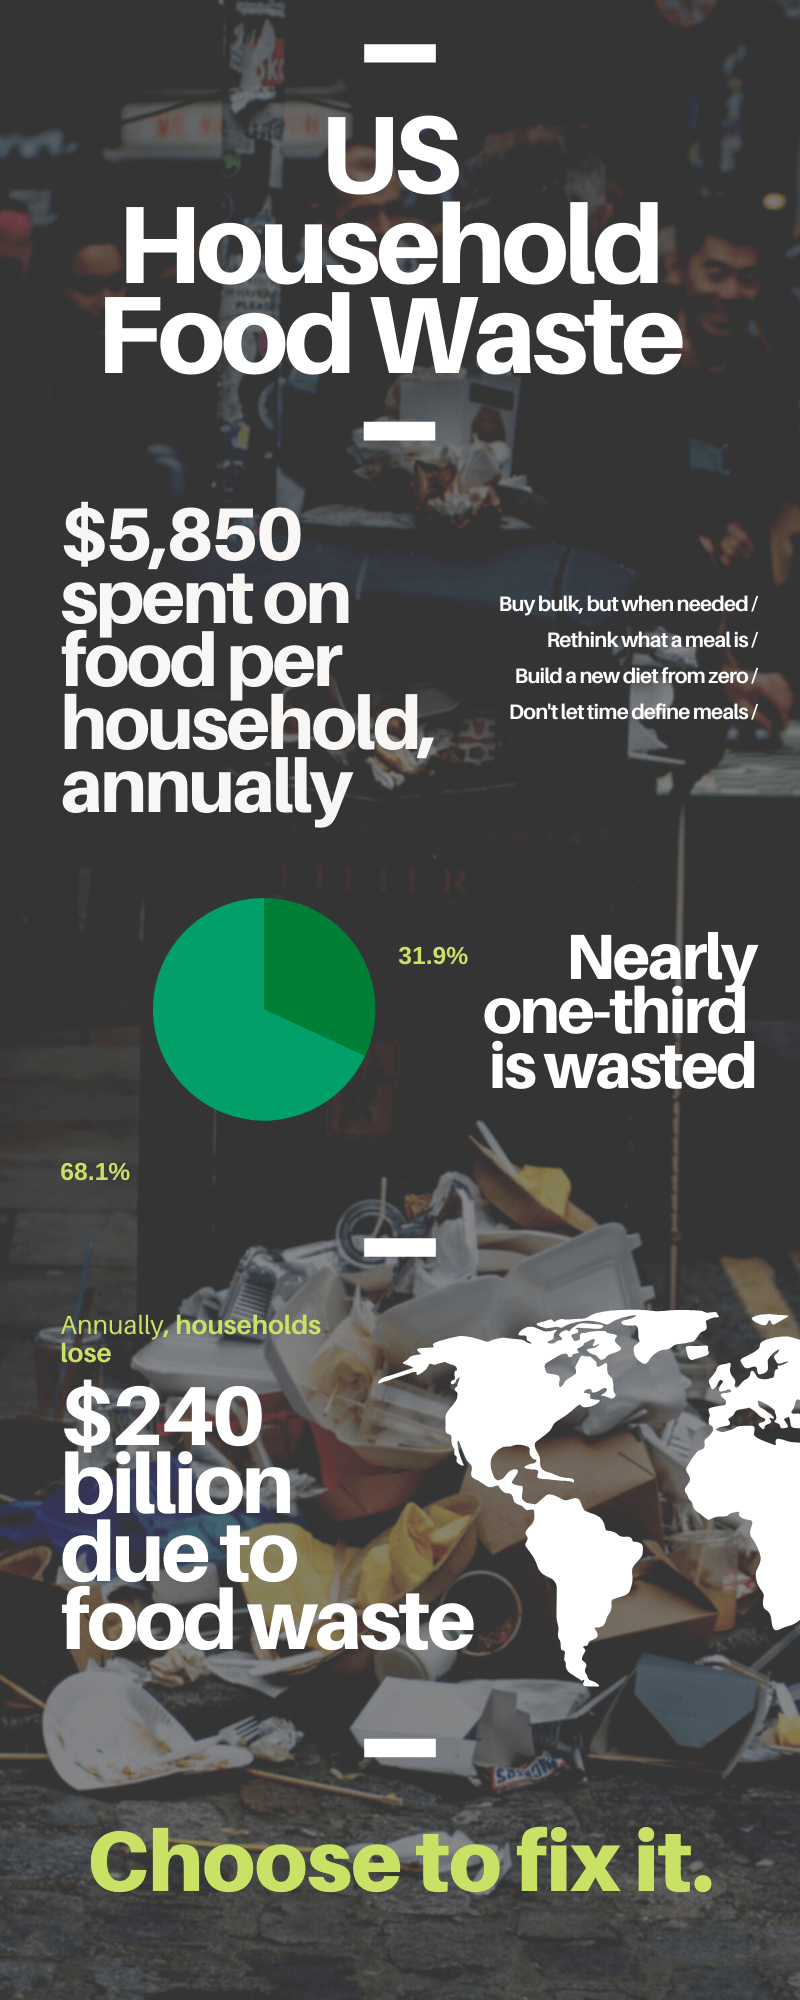 US Households waste approximately 1/3 of their food, learn how to reduce it